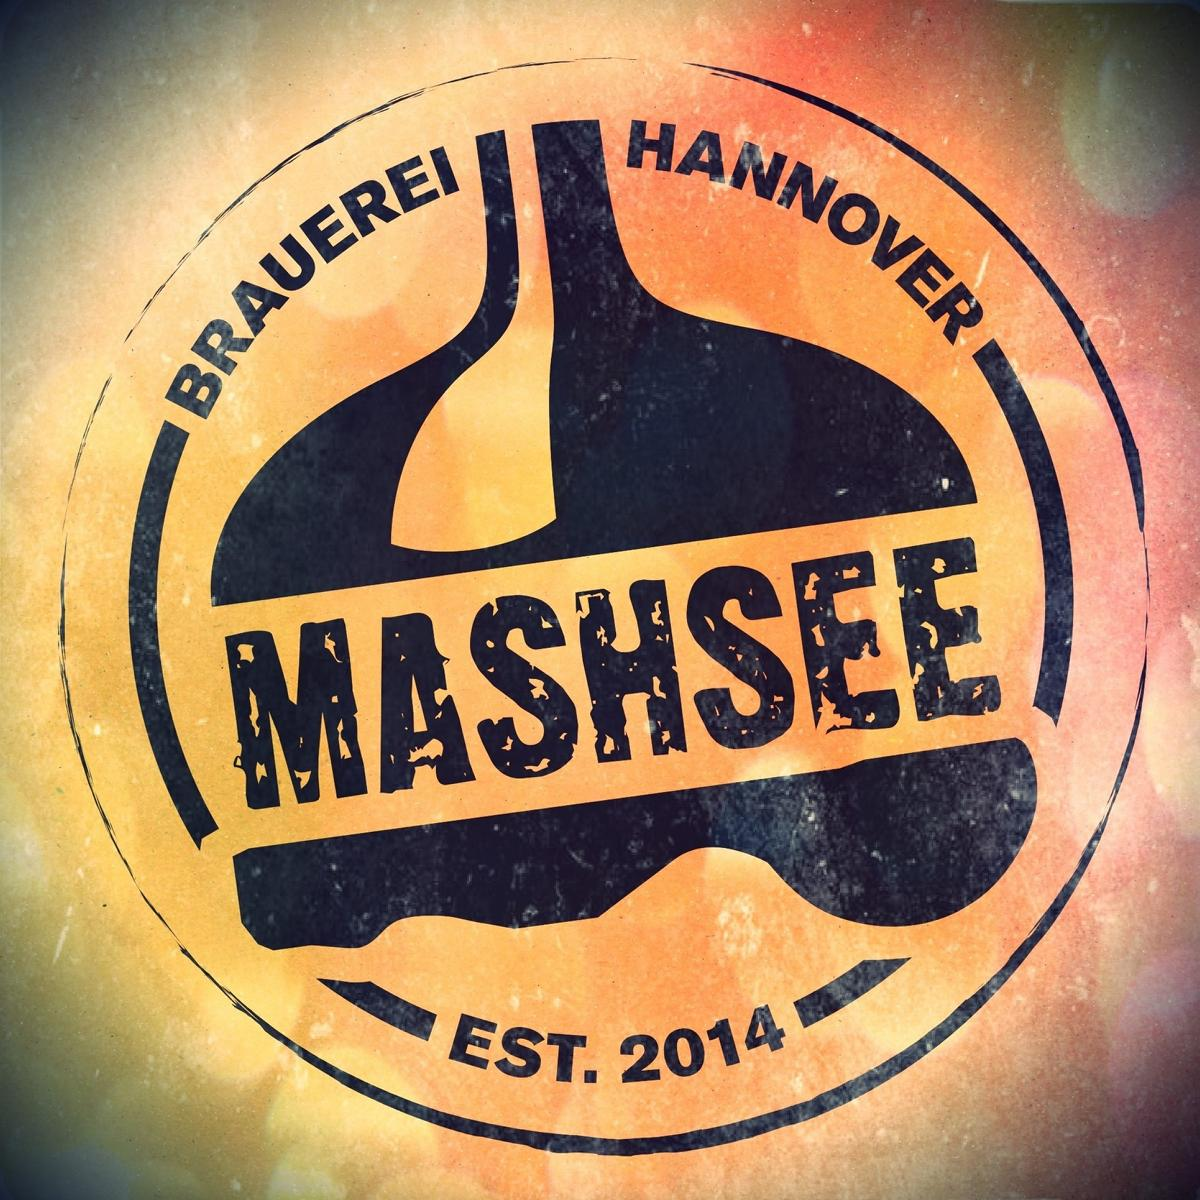 Style Hannover Mashsee Online Shop - Support your locals